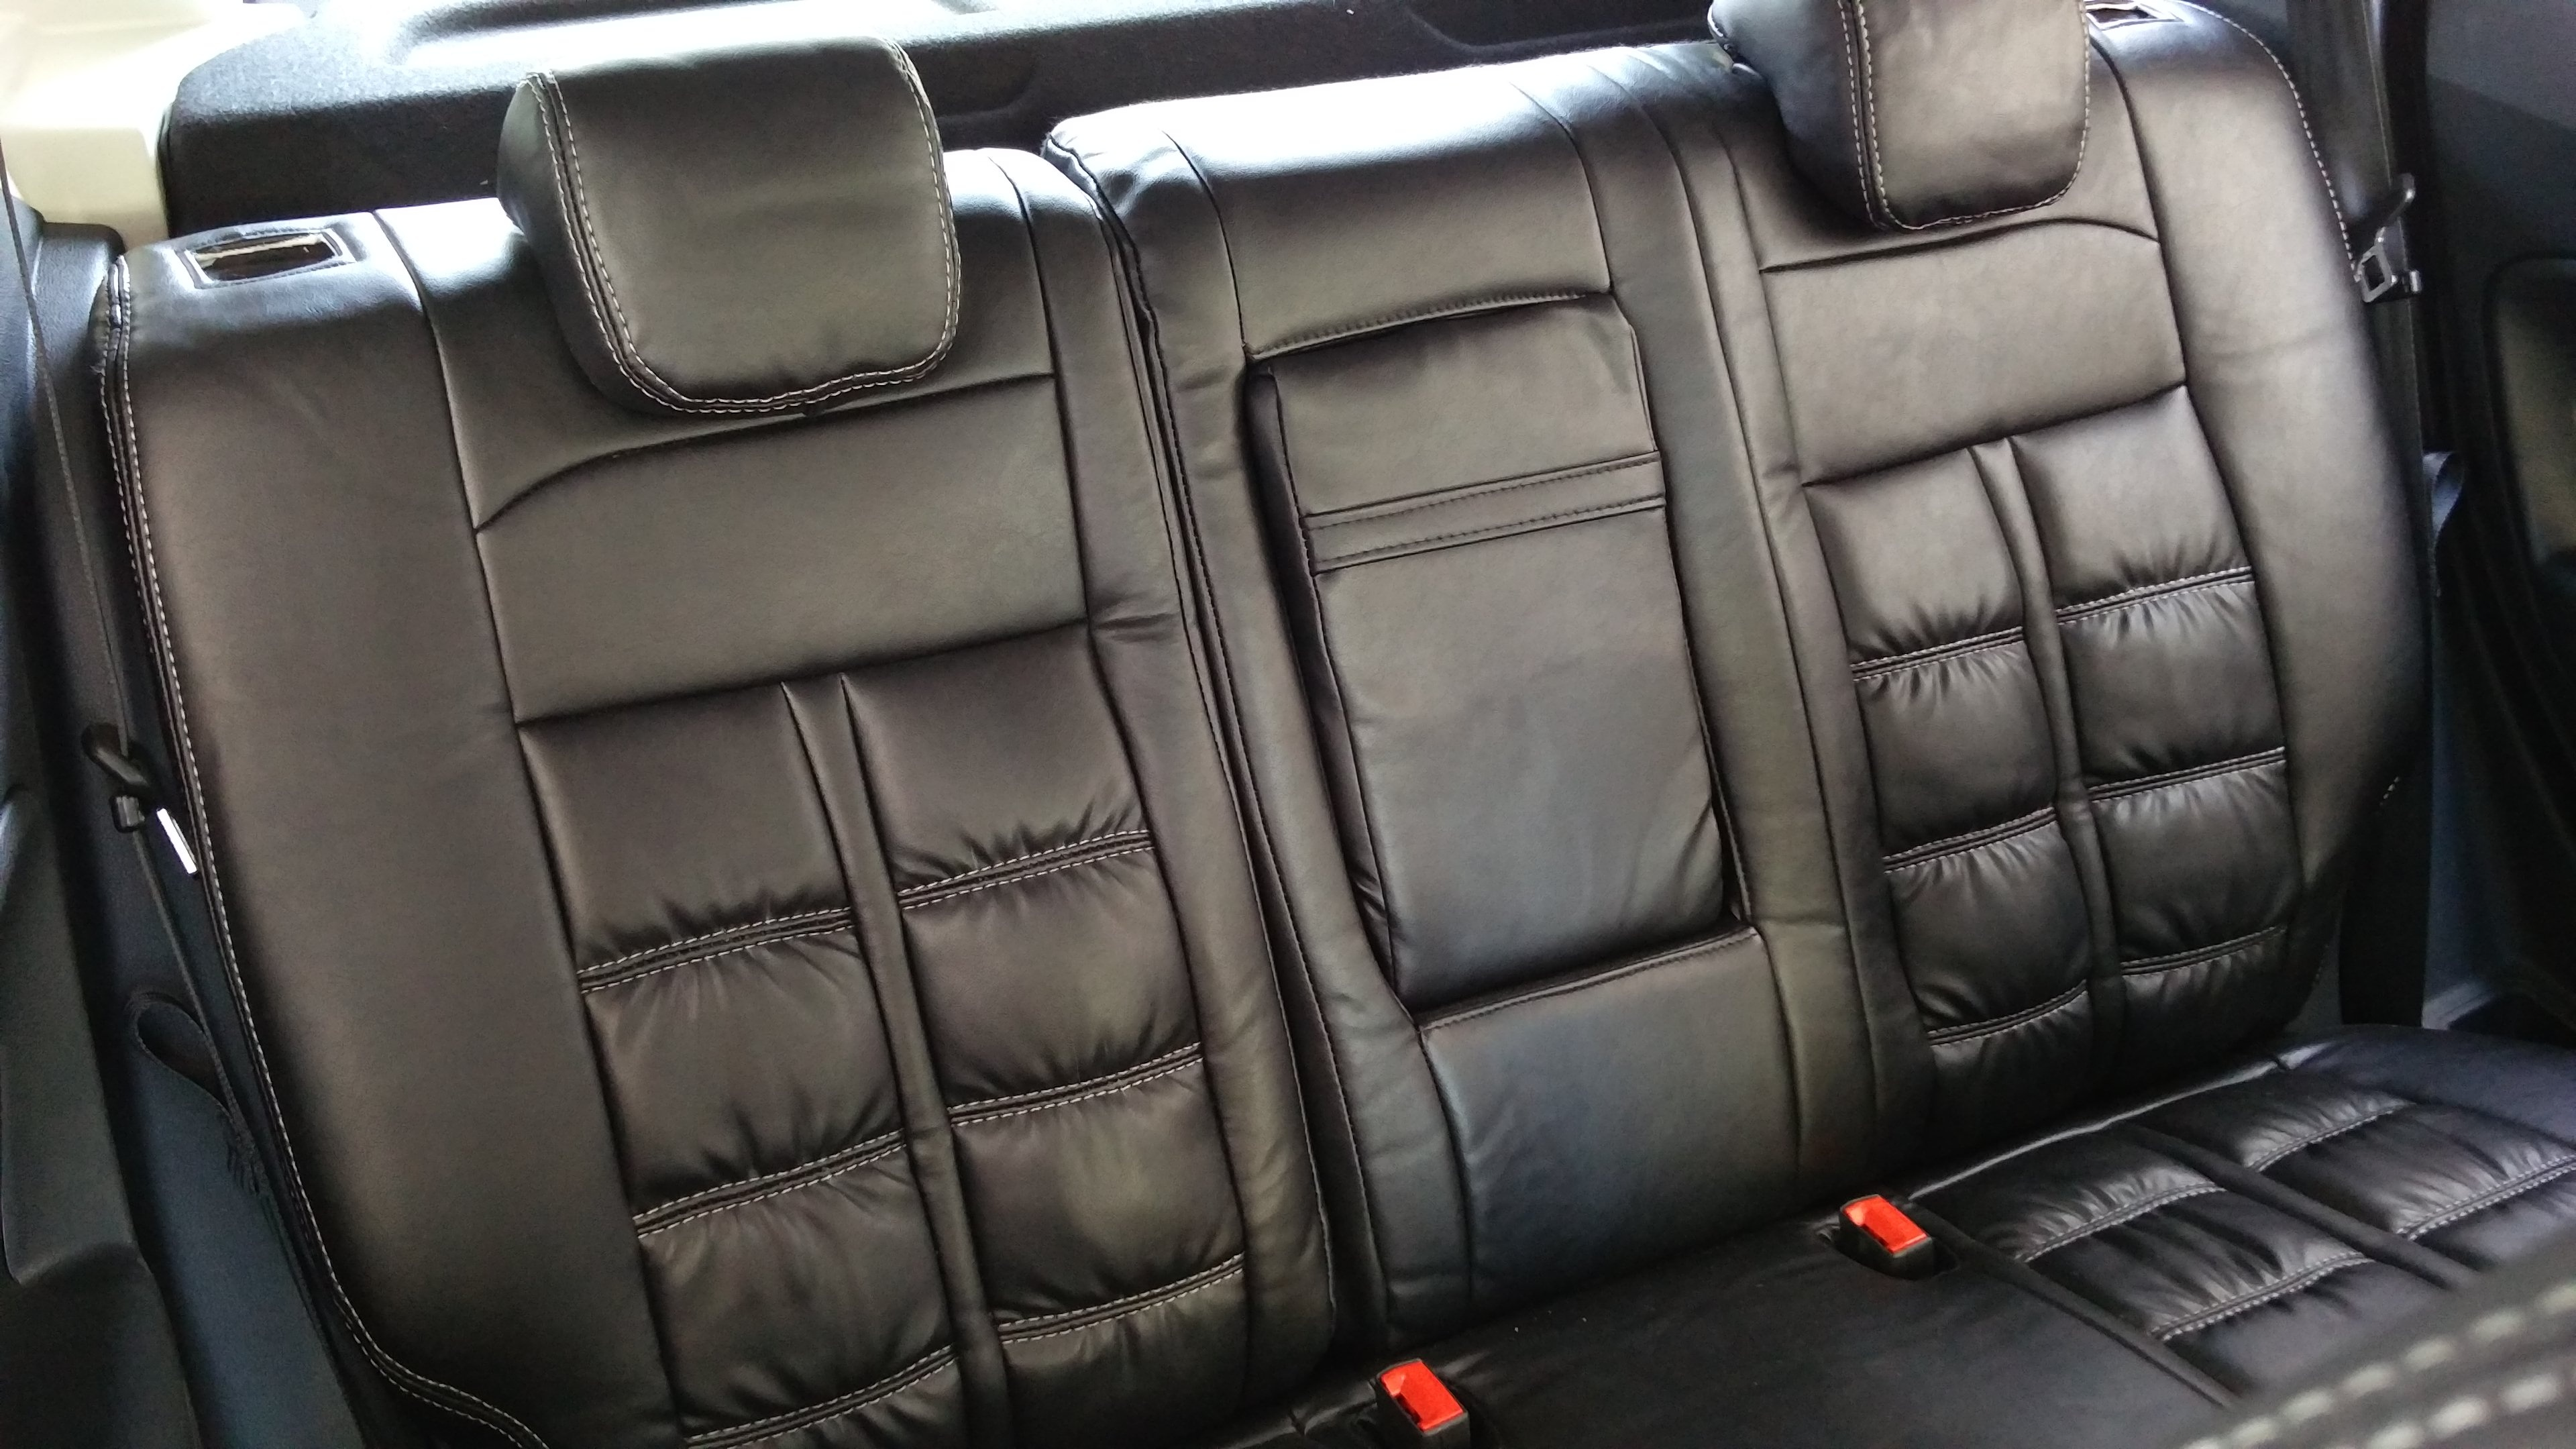 Pleasant What Kind Of Seat Cover Best Suits An Indian Car Quora Gamerscity Chair Design For Home Gamerscityorg